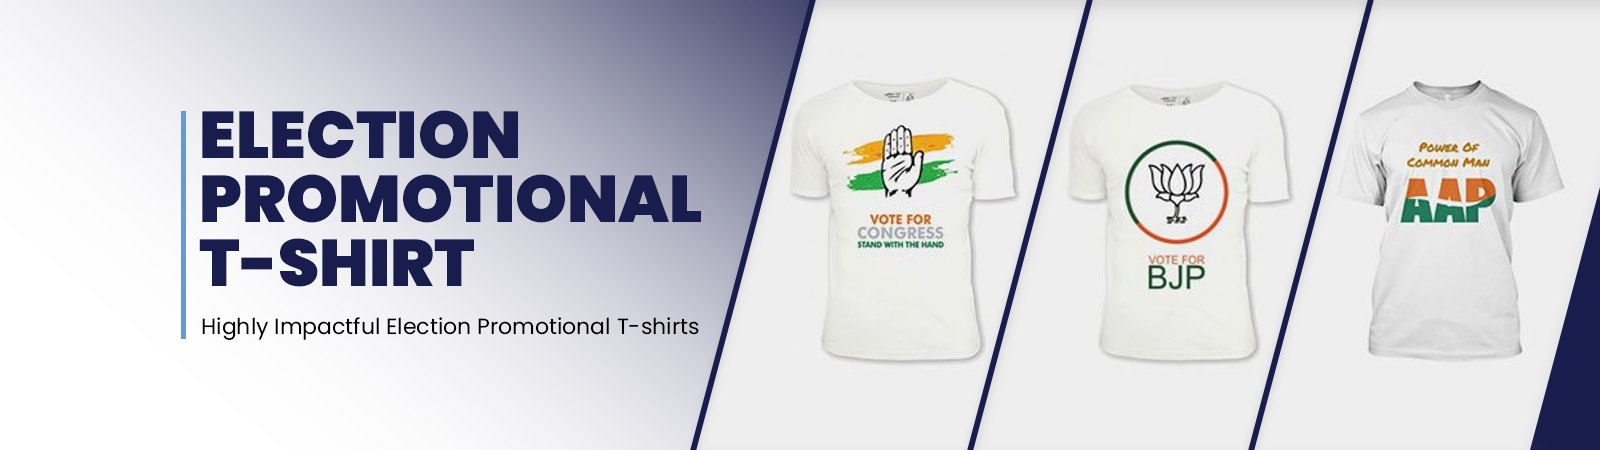 Congress Election T-Shirt